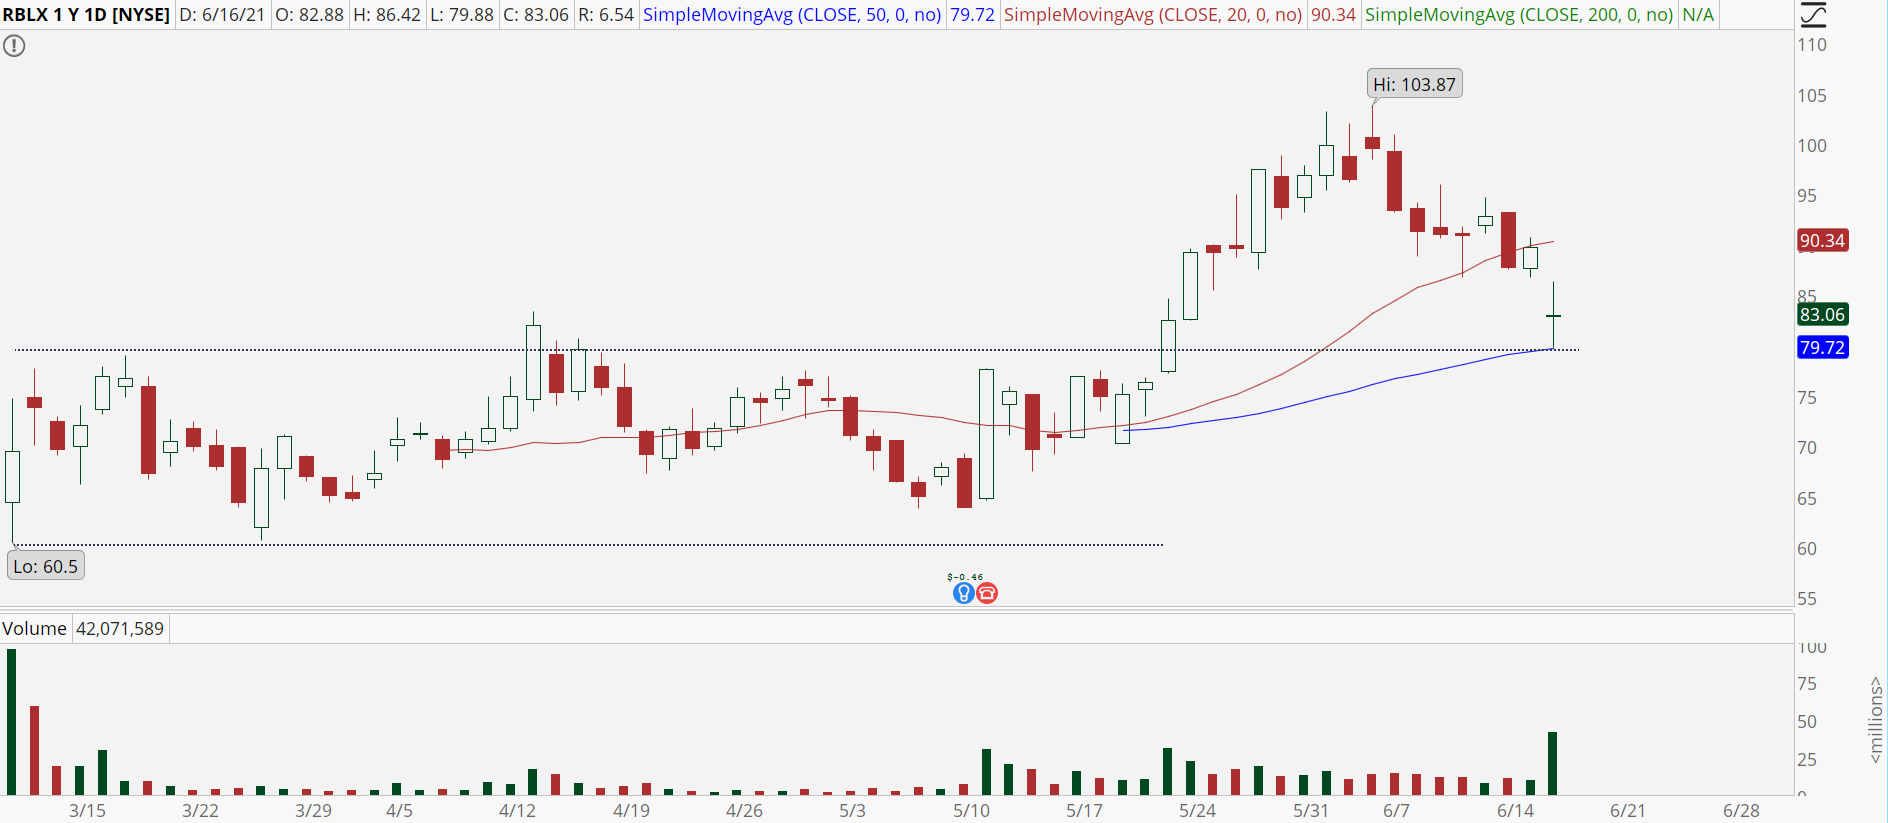 Roblox (RBLX) stock chart with key support test.